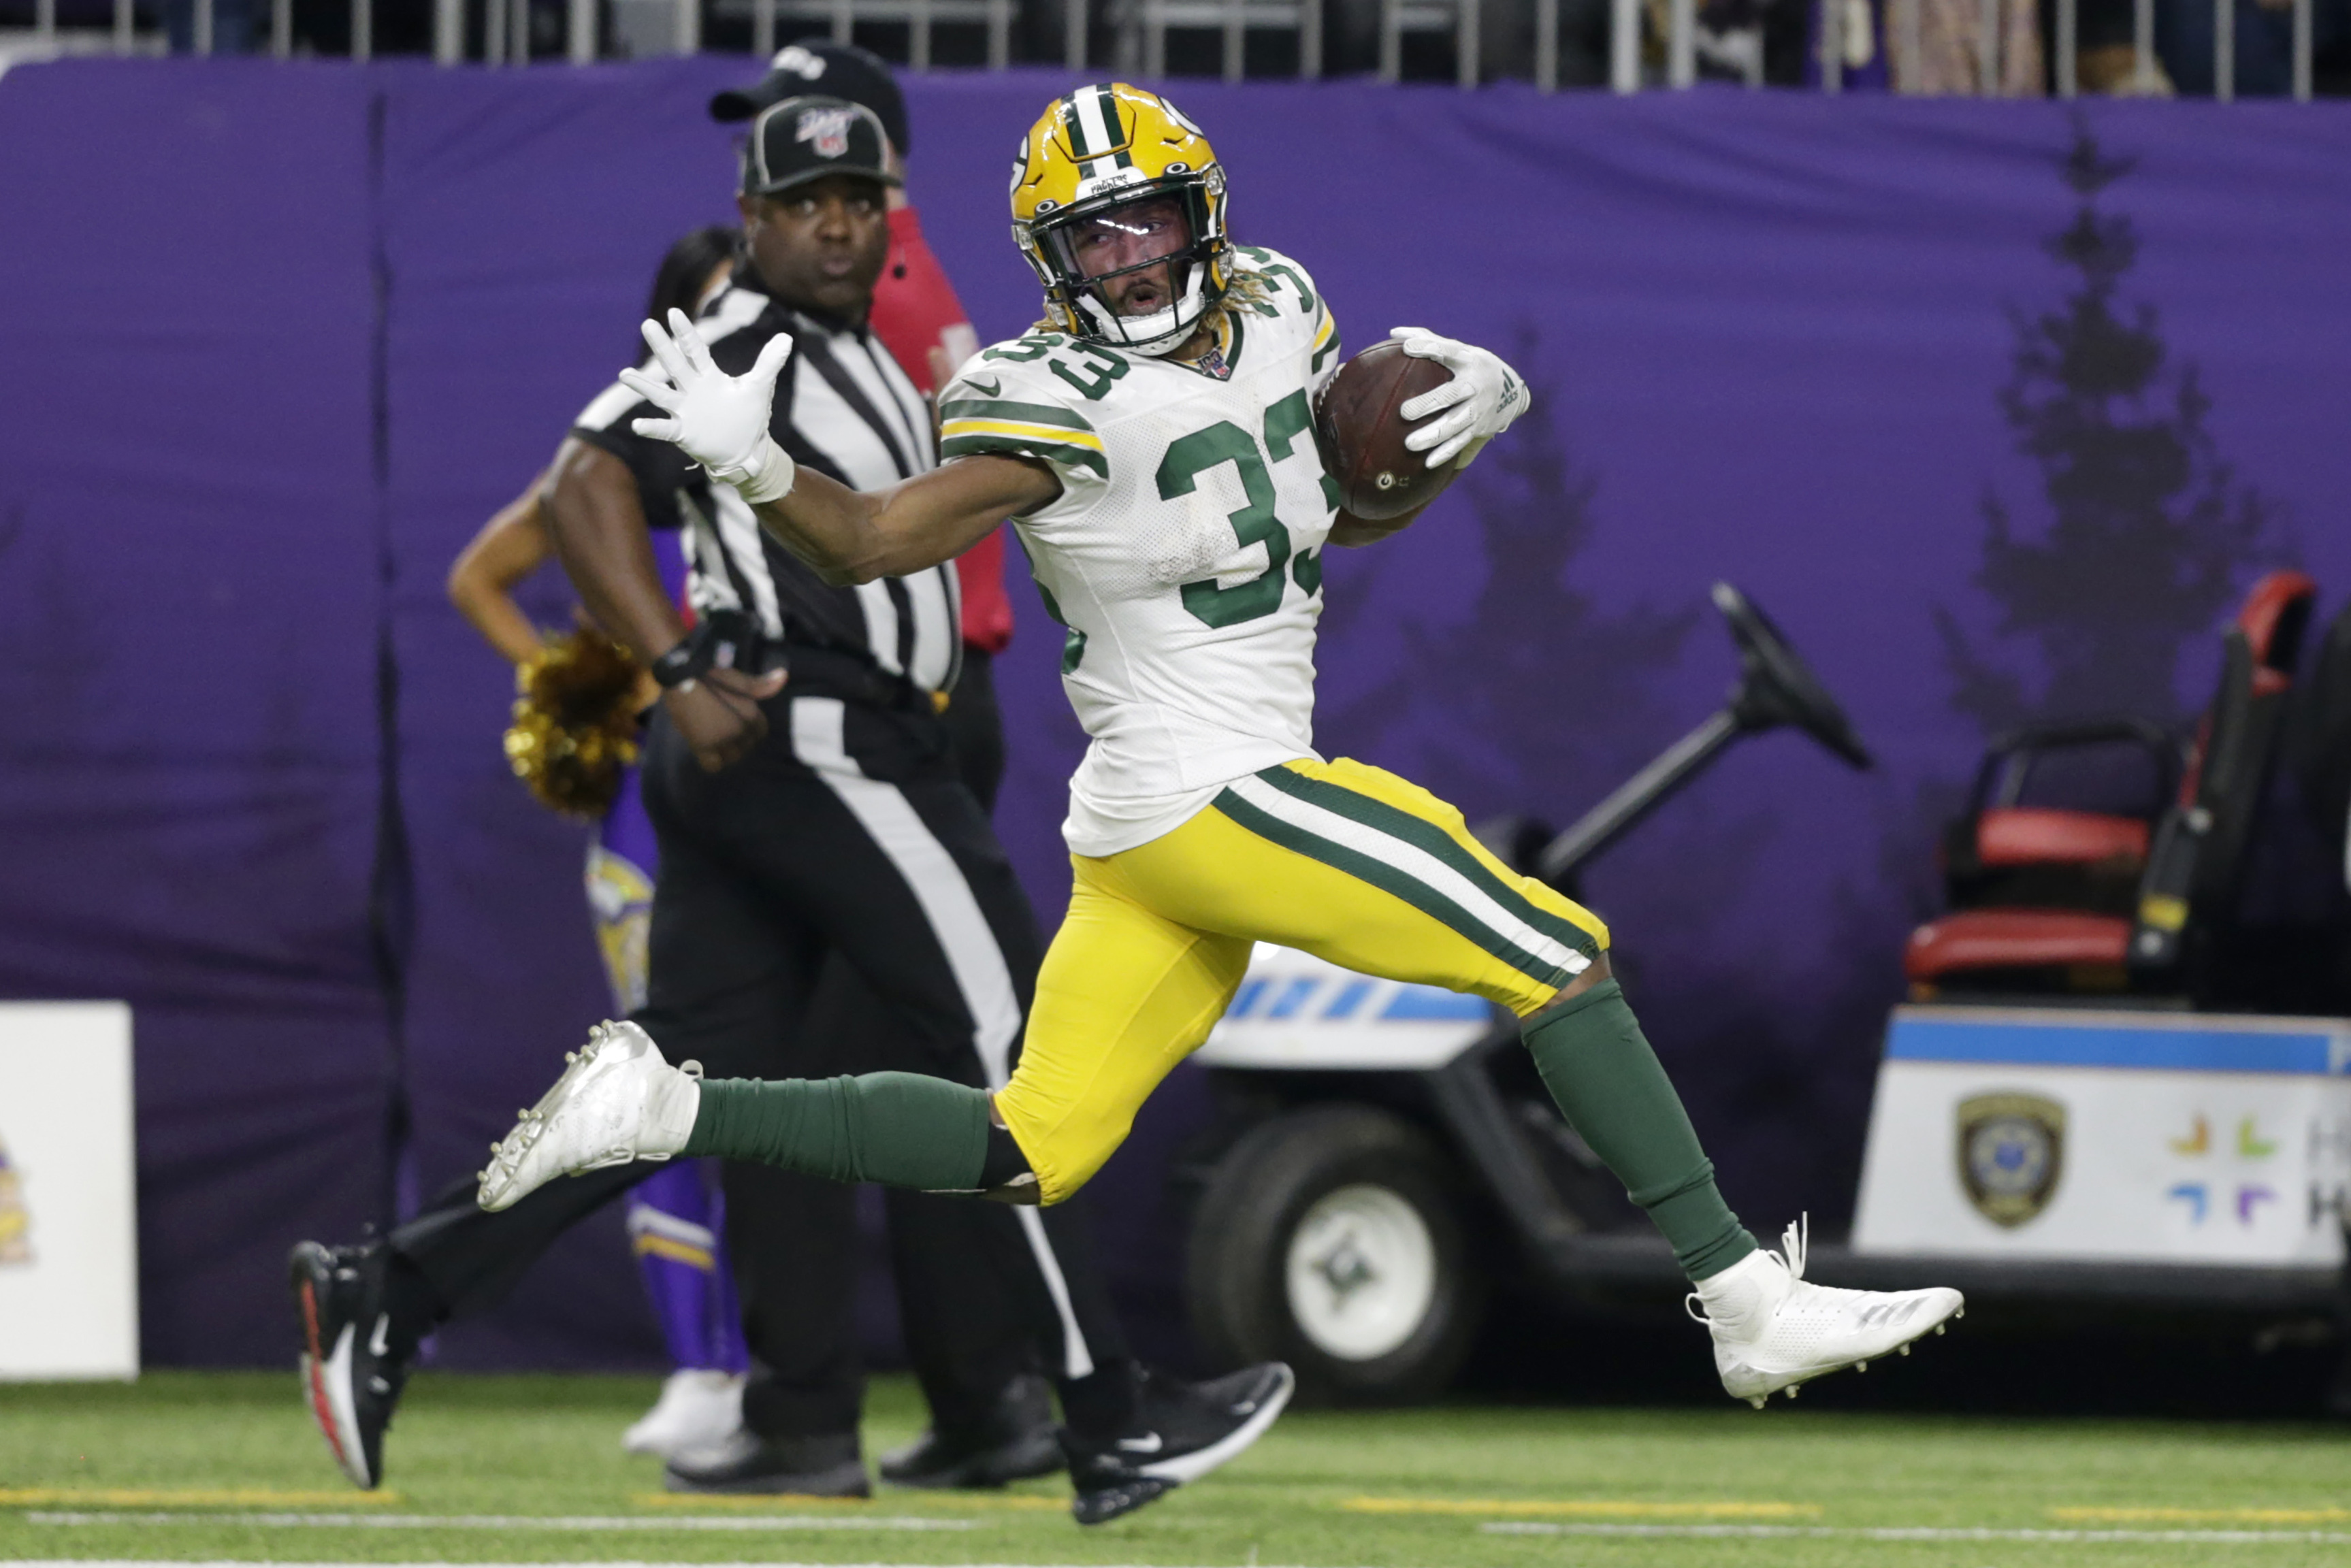 Green Bay Packers Clinch Nfc North After Win Against The Minnesota Vikings Monday Night Football Recap Score Stats And More Oregonlive Com